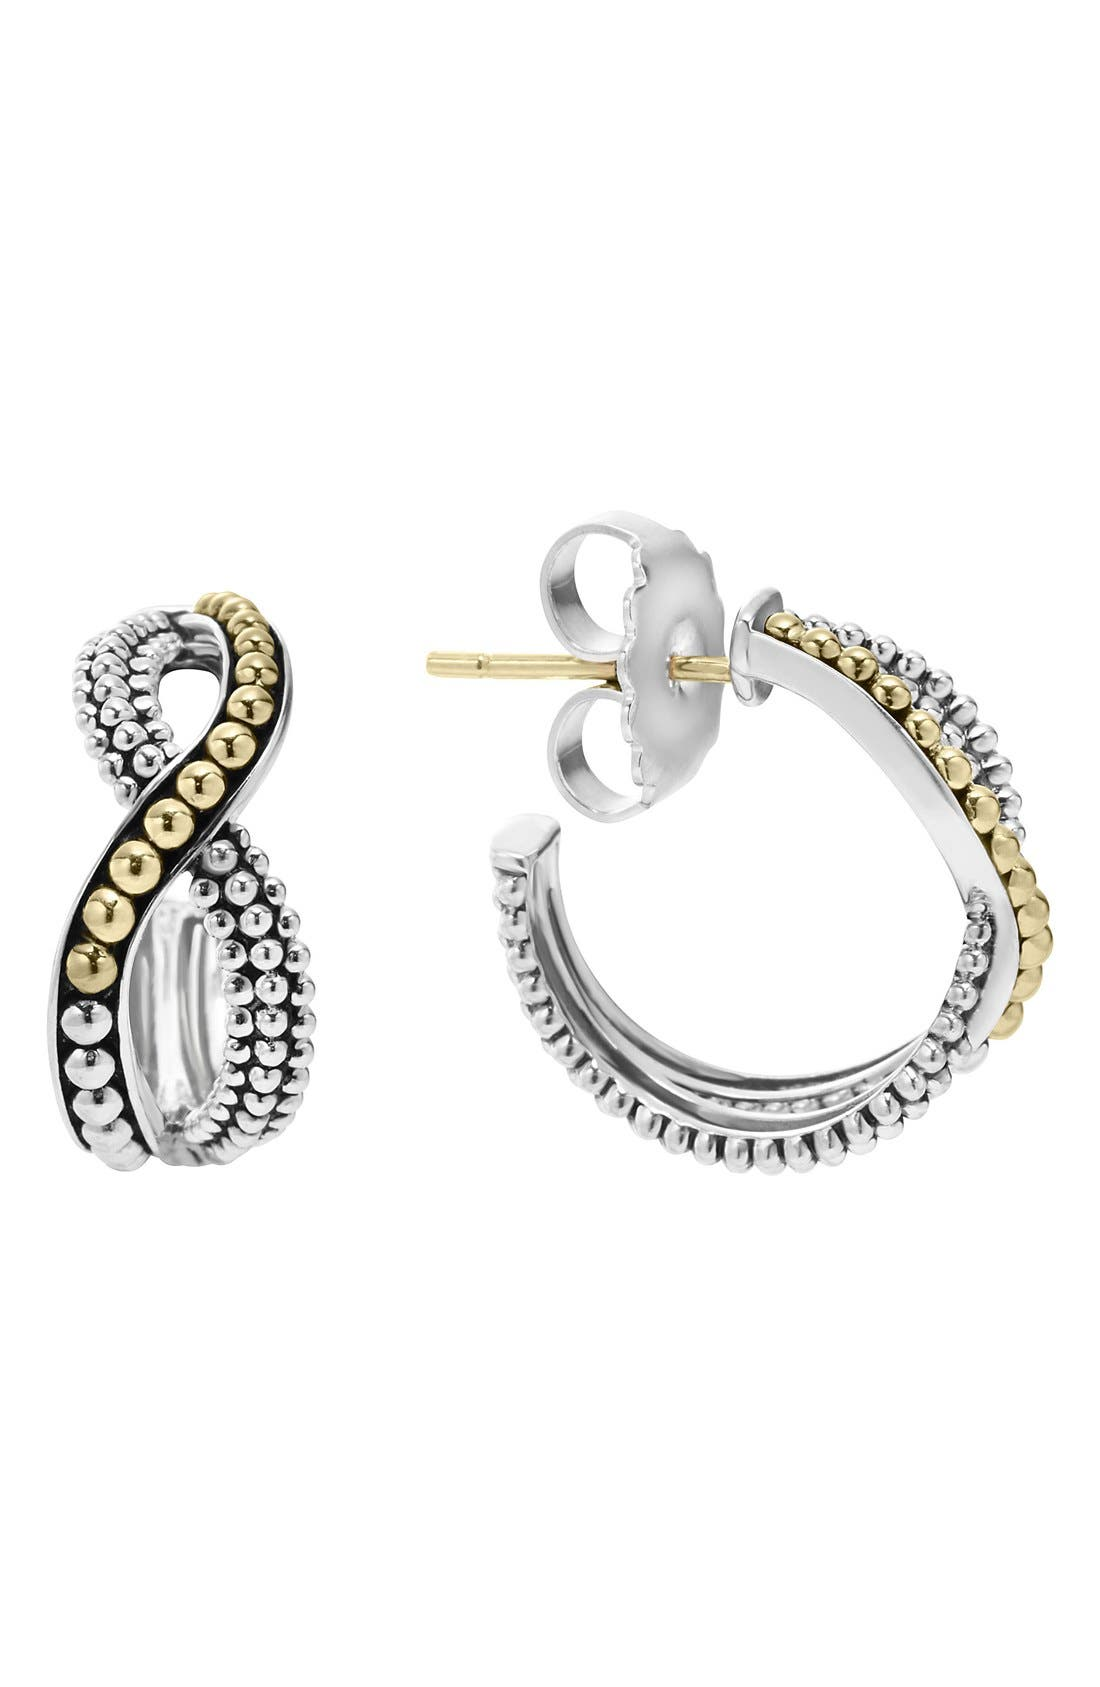 LAGOS Infinity Double Twist Hoop Earrings